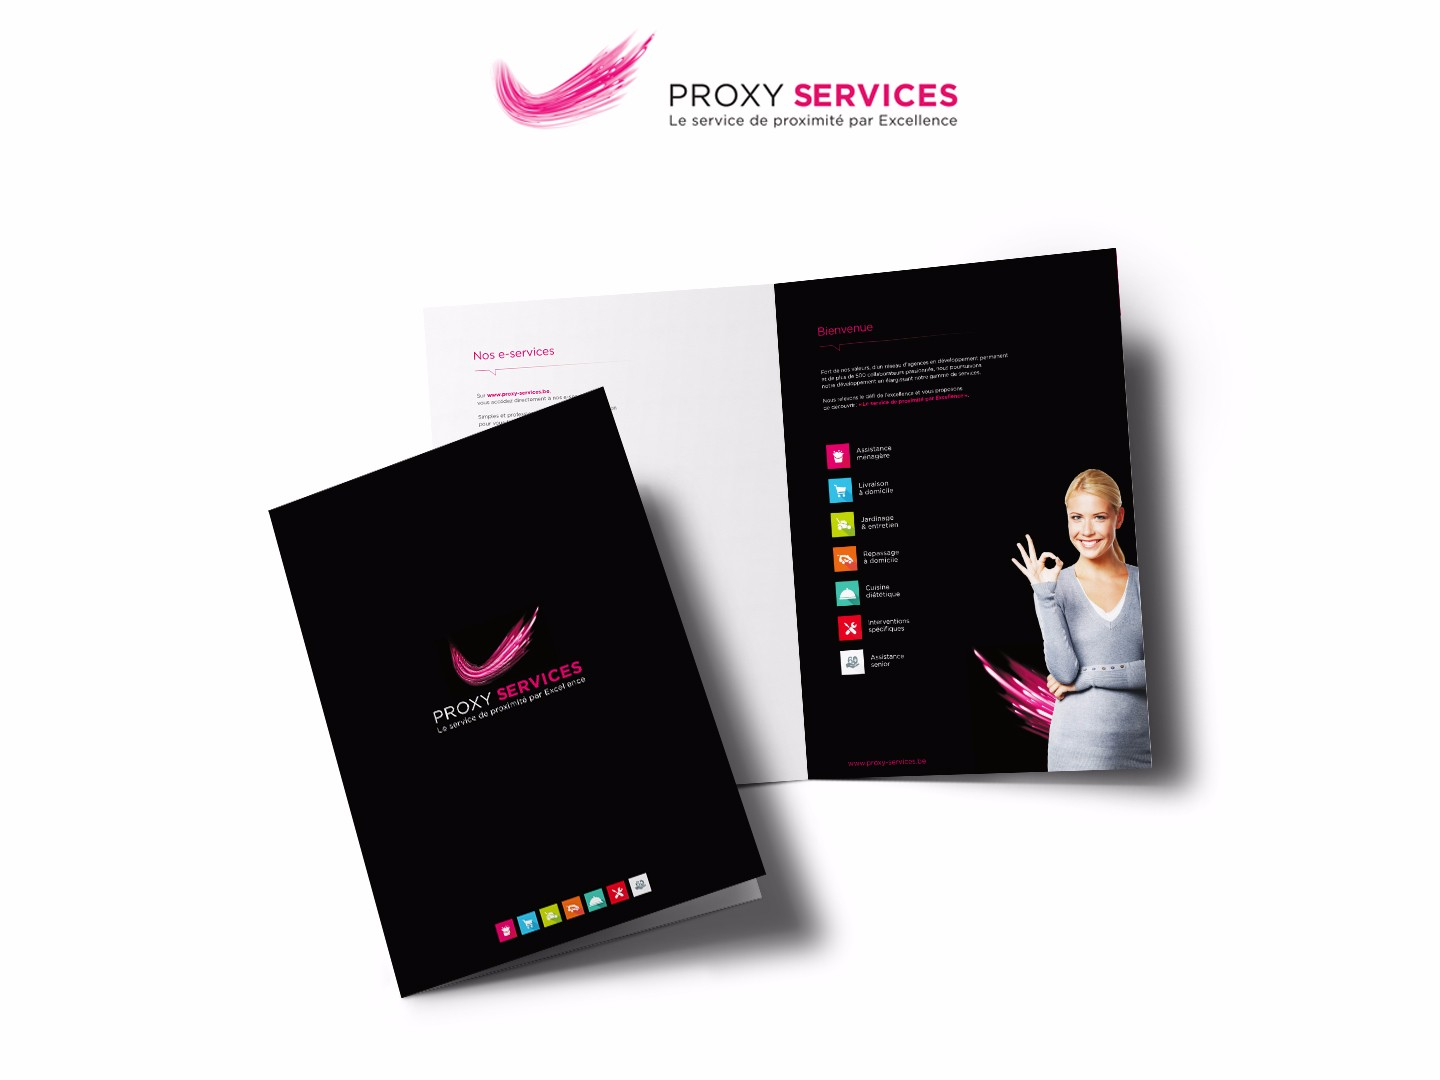 Lusis_ProxyService6_Site